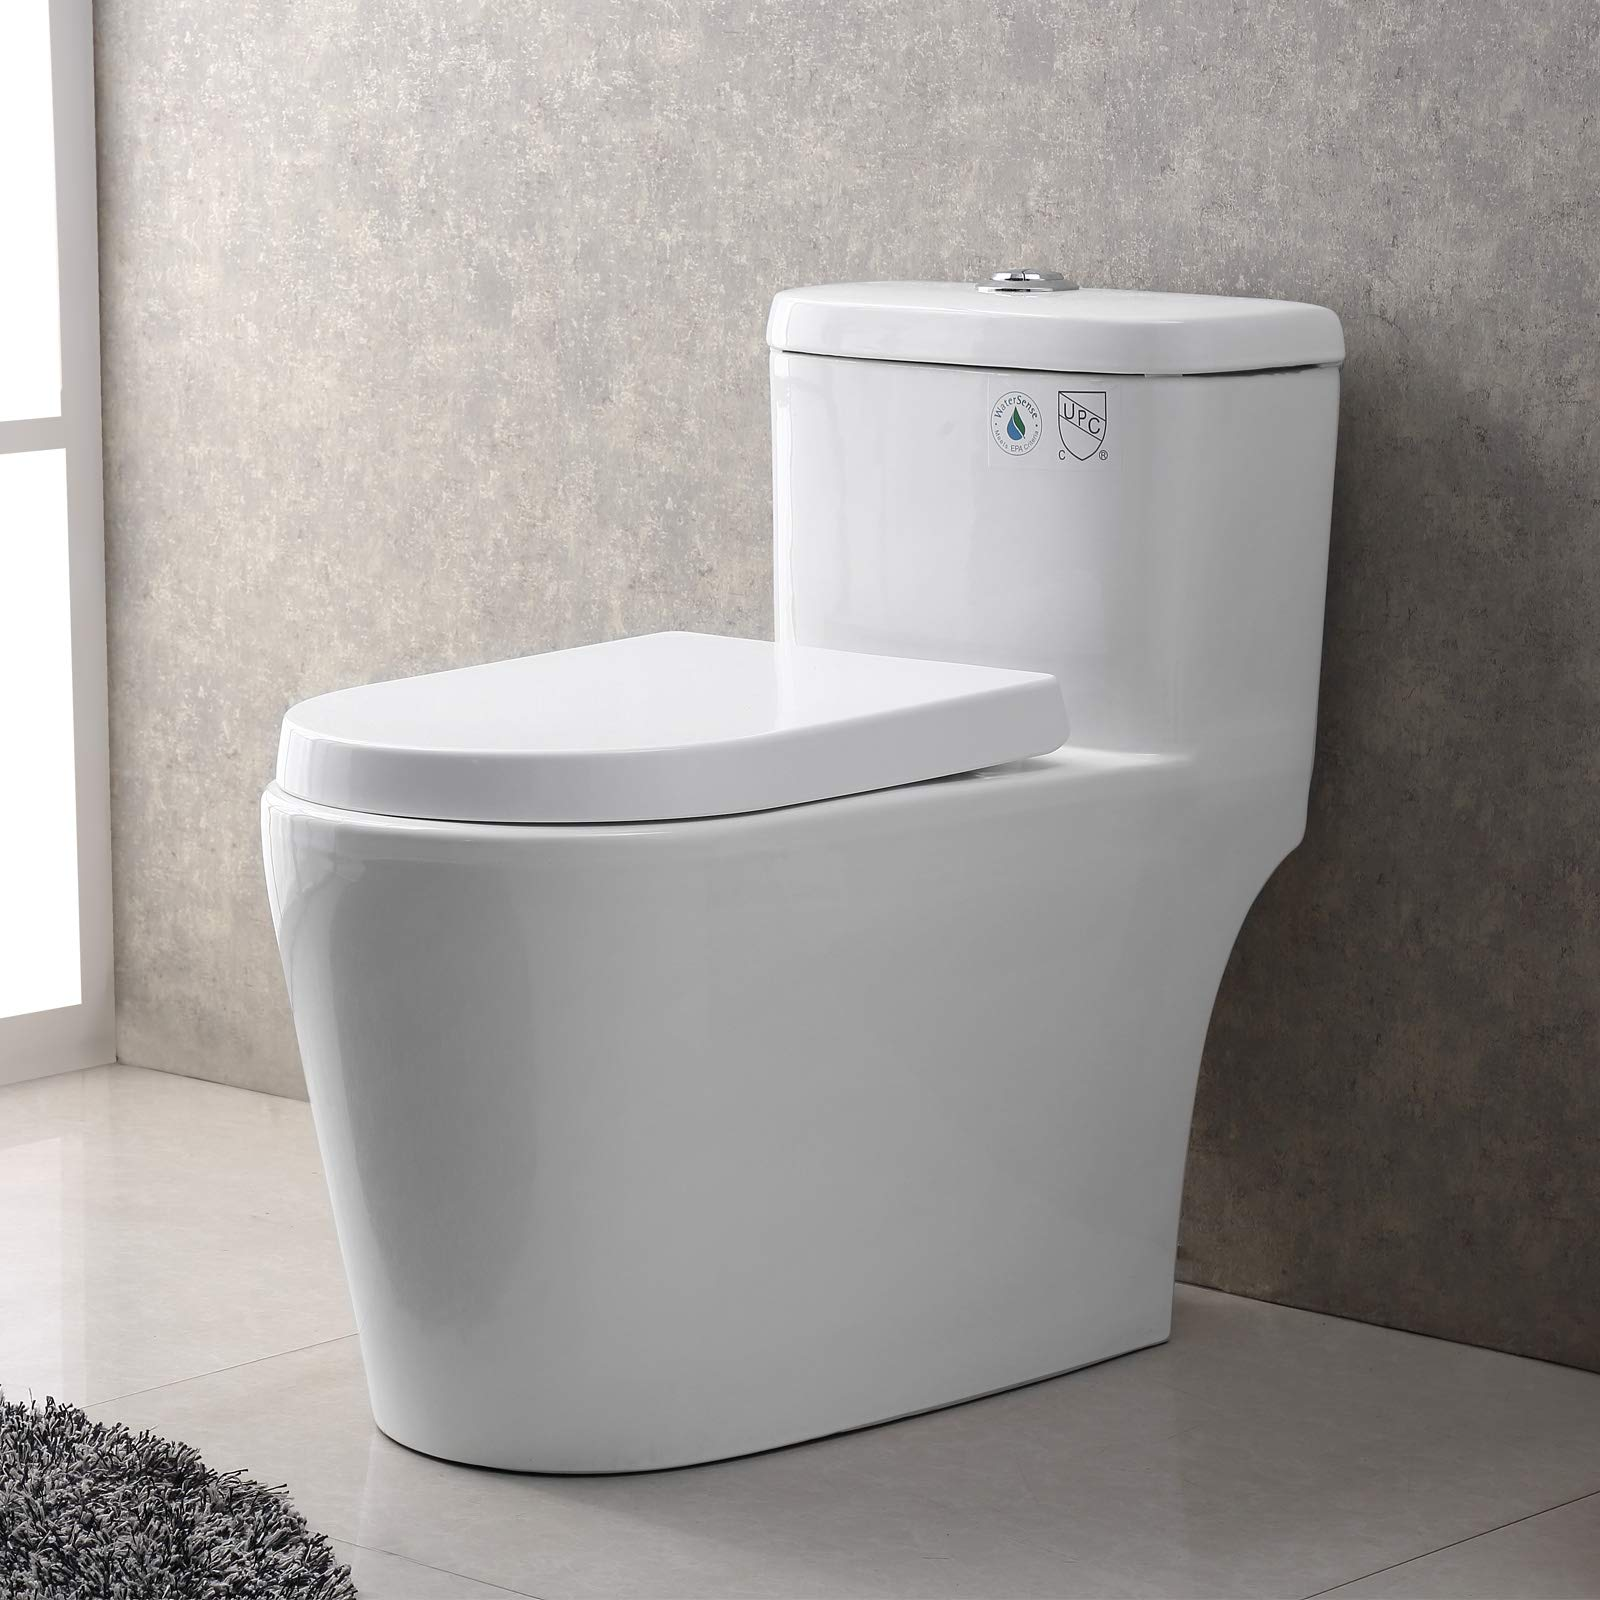 Mecor One-Piece Toilet Siphon Dual Flushing,Soft Closing Quick Release Seat 0.8/1.28Gpf,Cotton White. (27.6''X15.6''X27.9'') by mecor